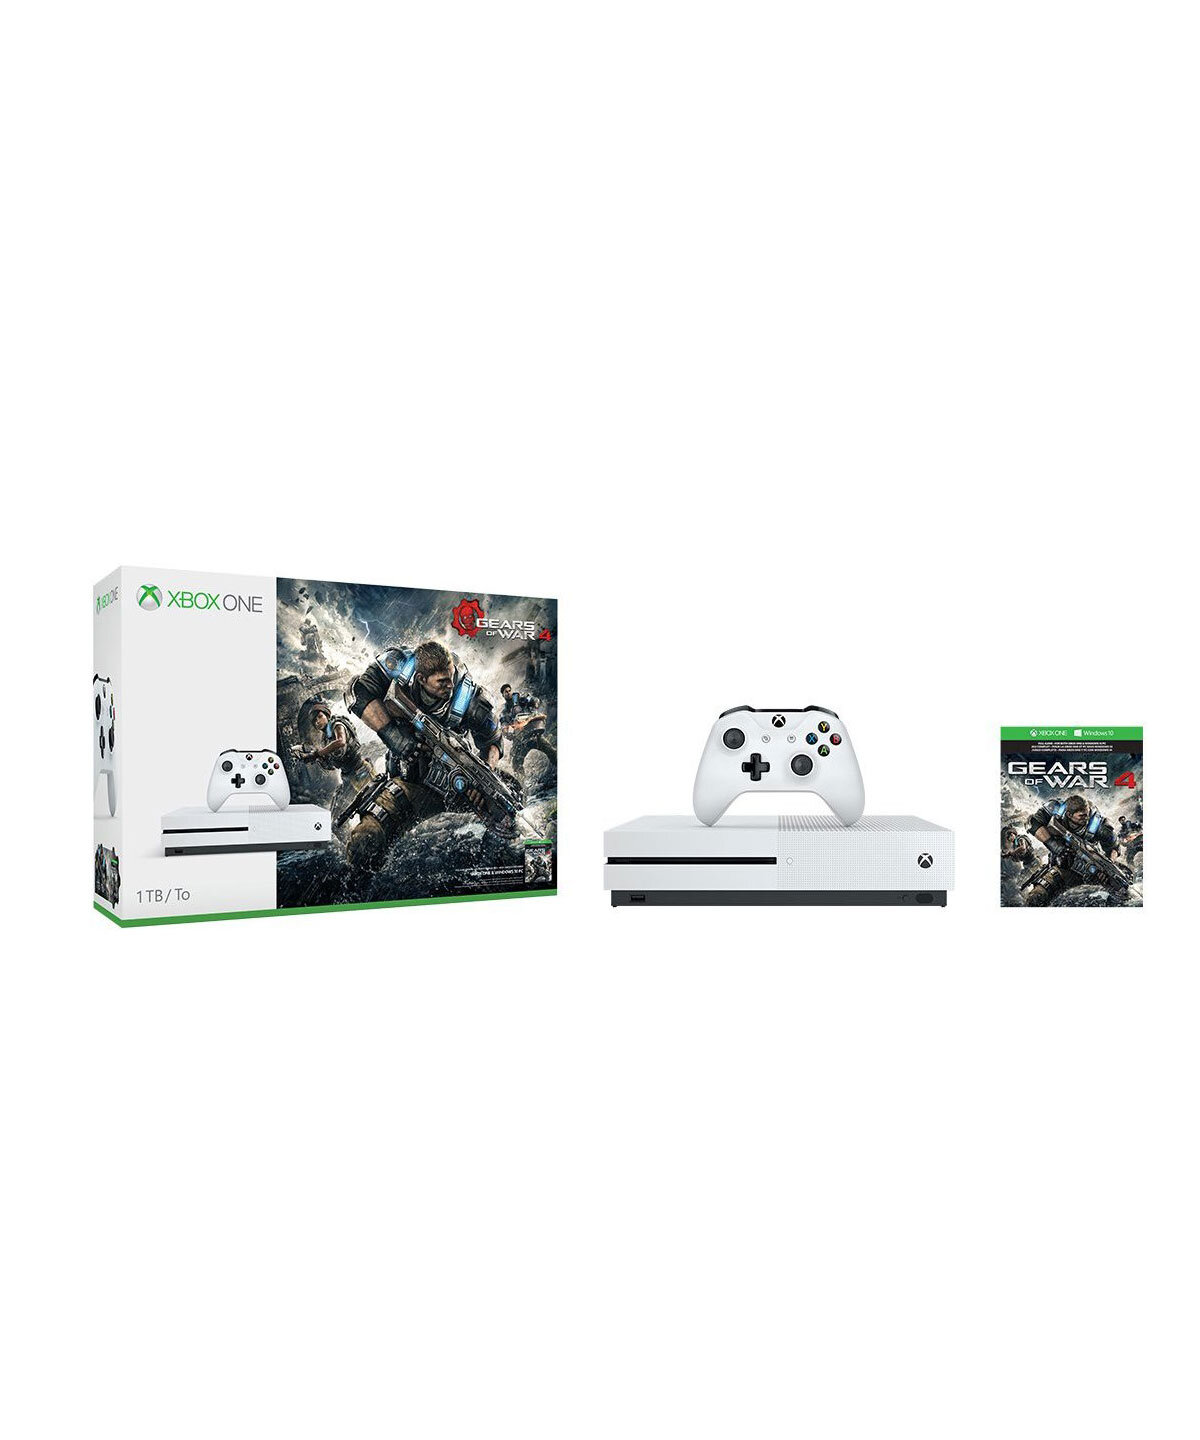 Bộ máy chơi game Microsoft Xbox One S 1TB Console Gears of War 4 Bundle